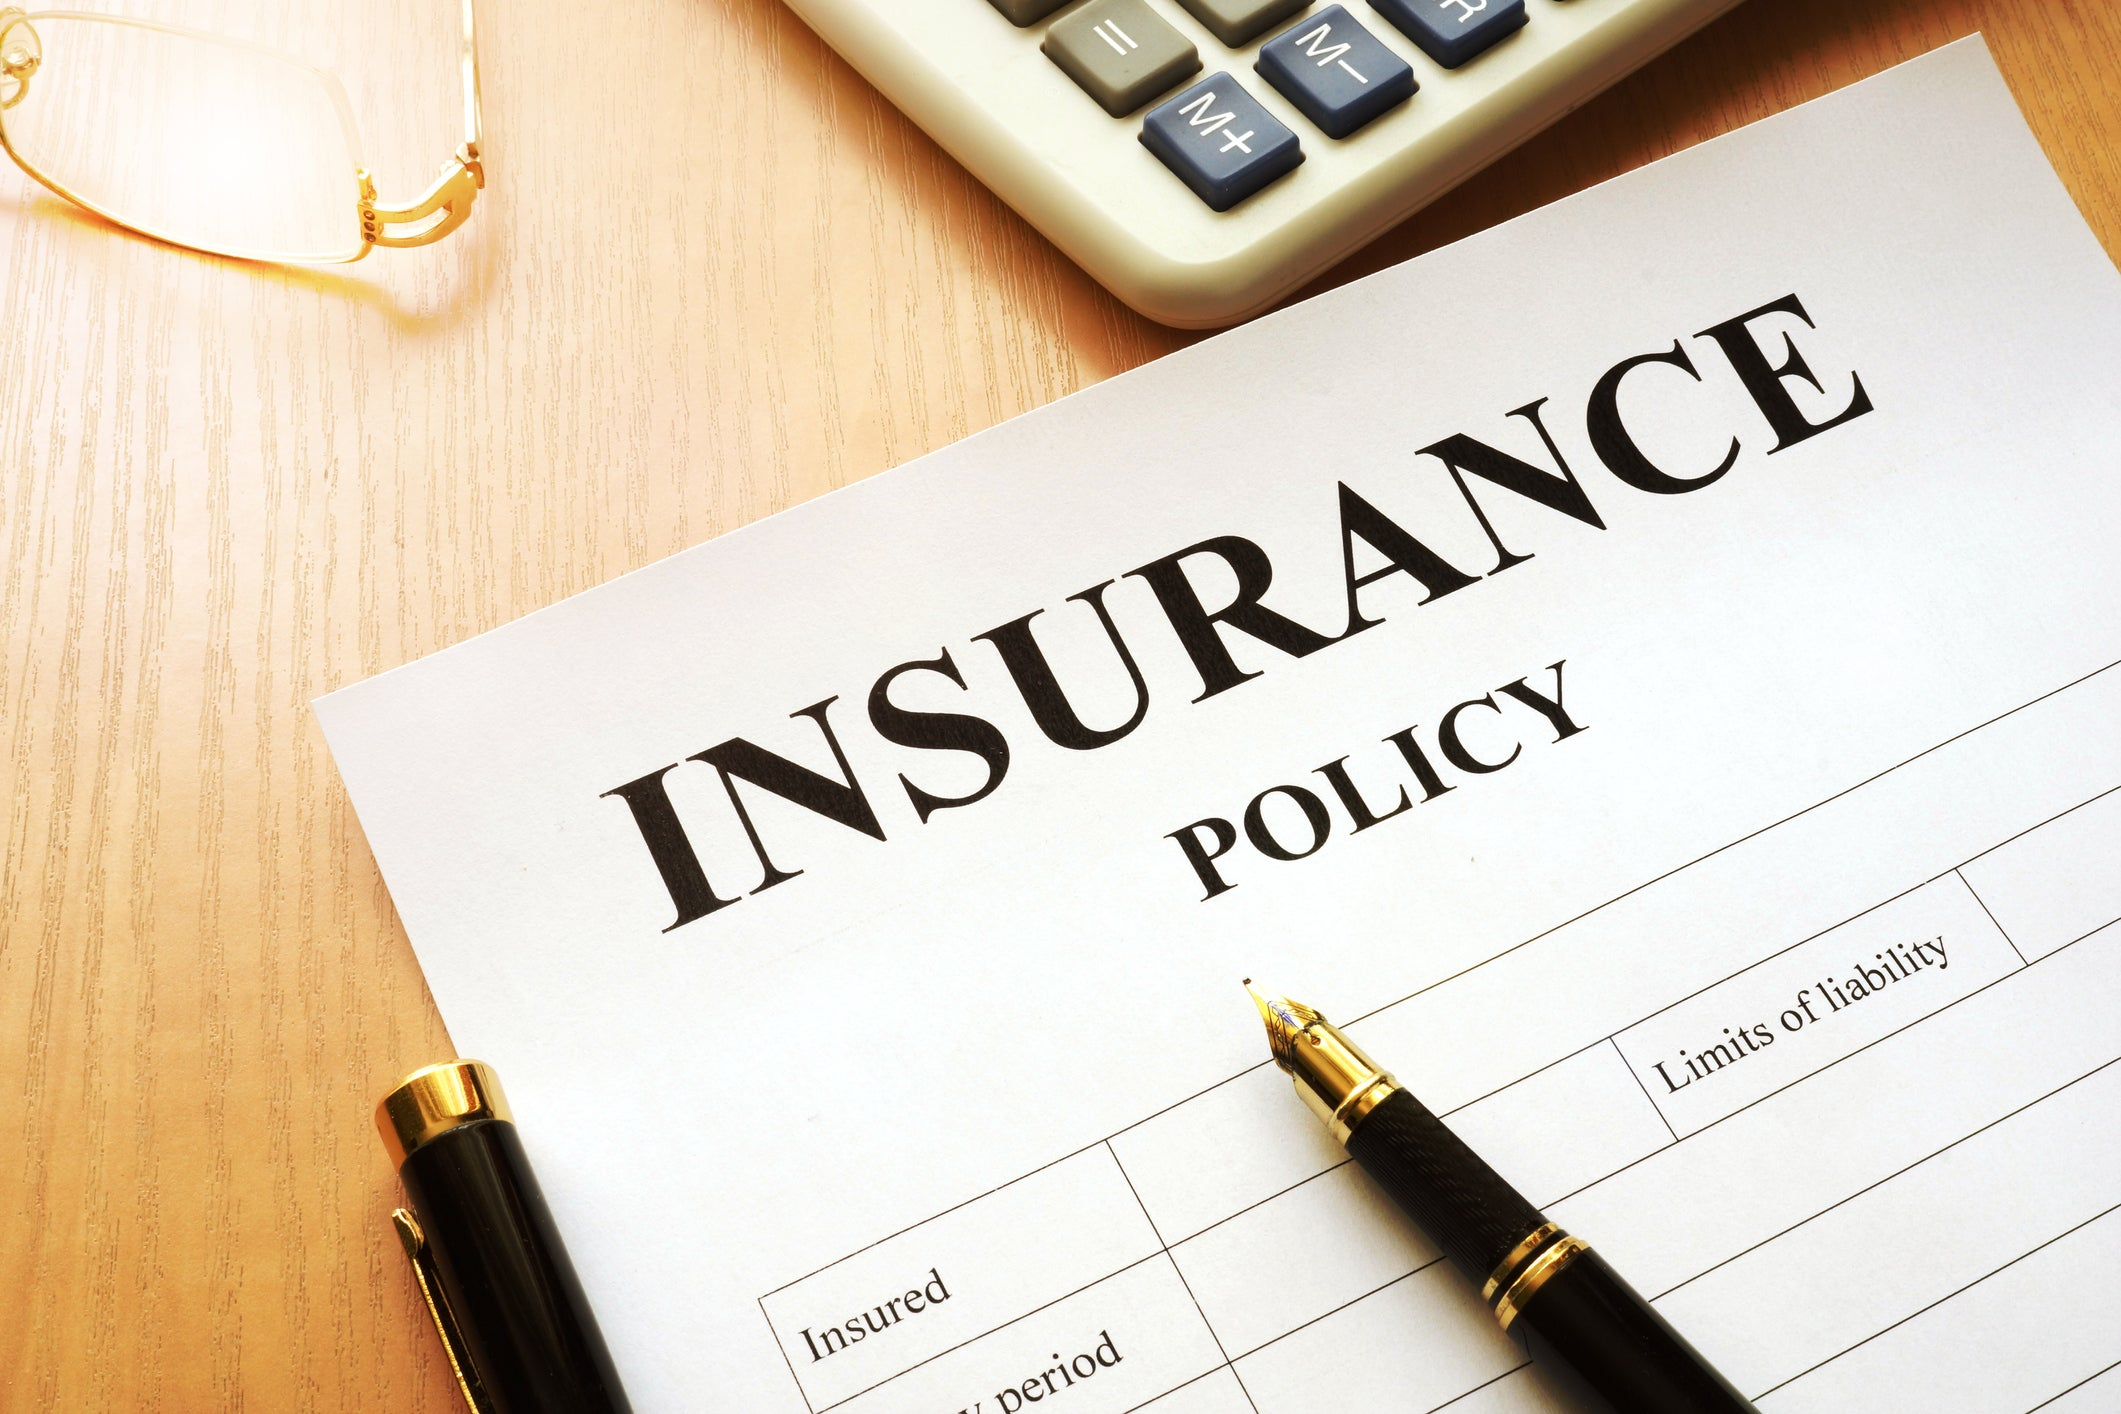 Here's Why You Should Avoid Whole Life Insurance Like the Plague | The Motley Fool